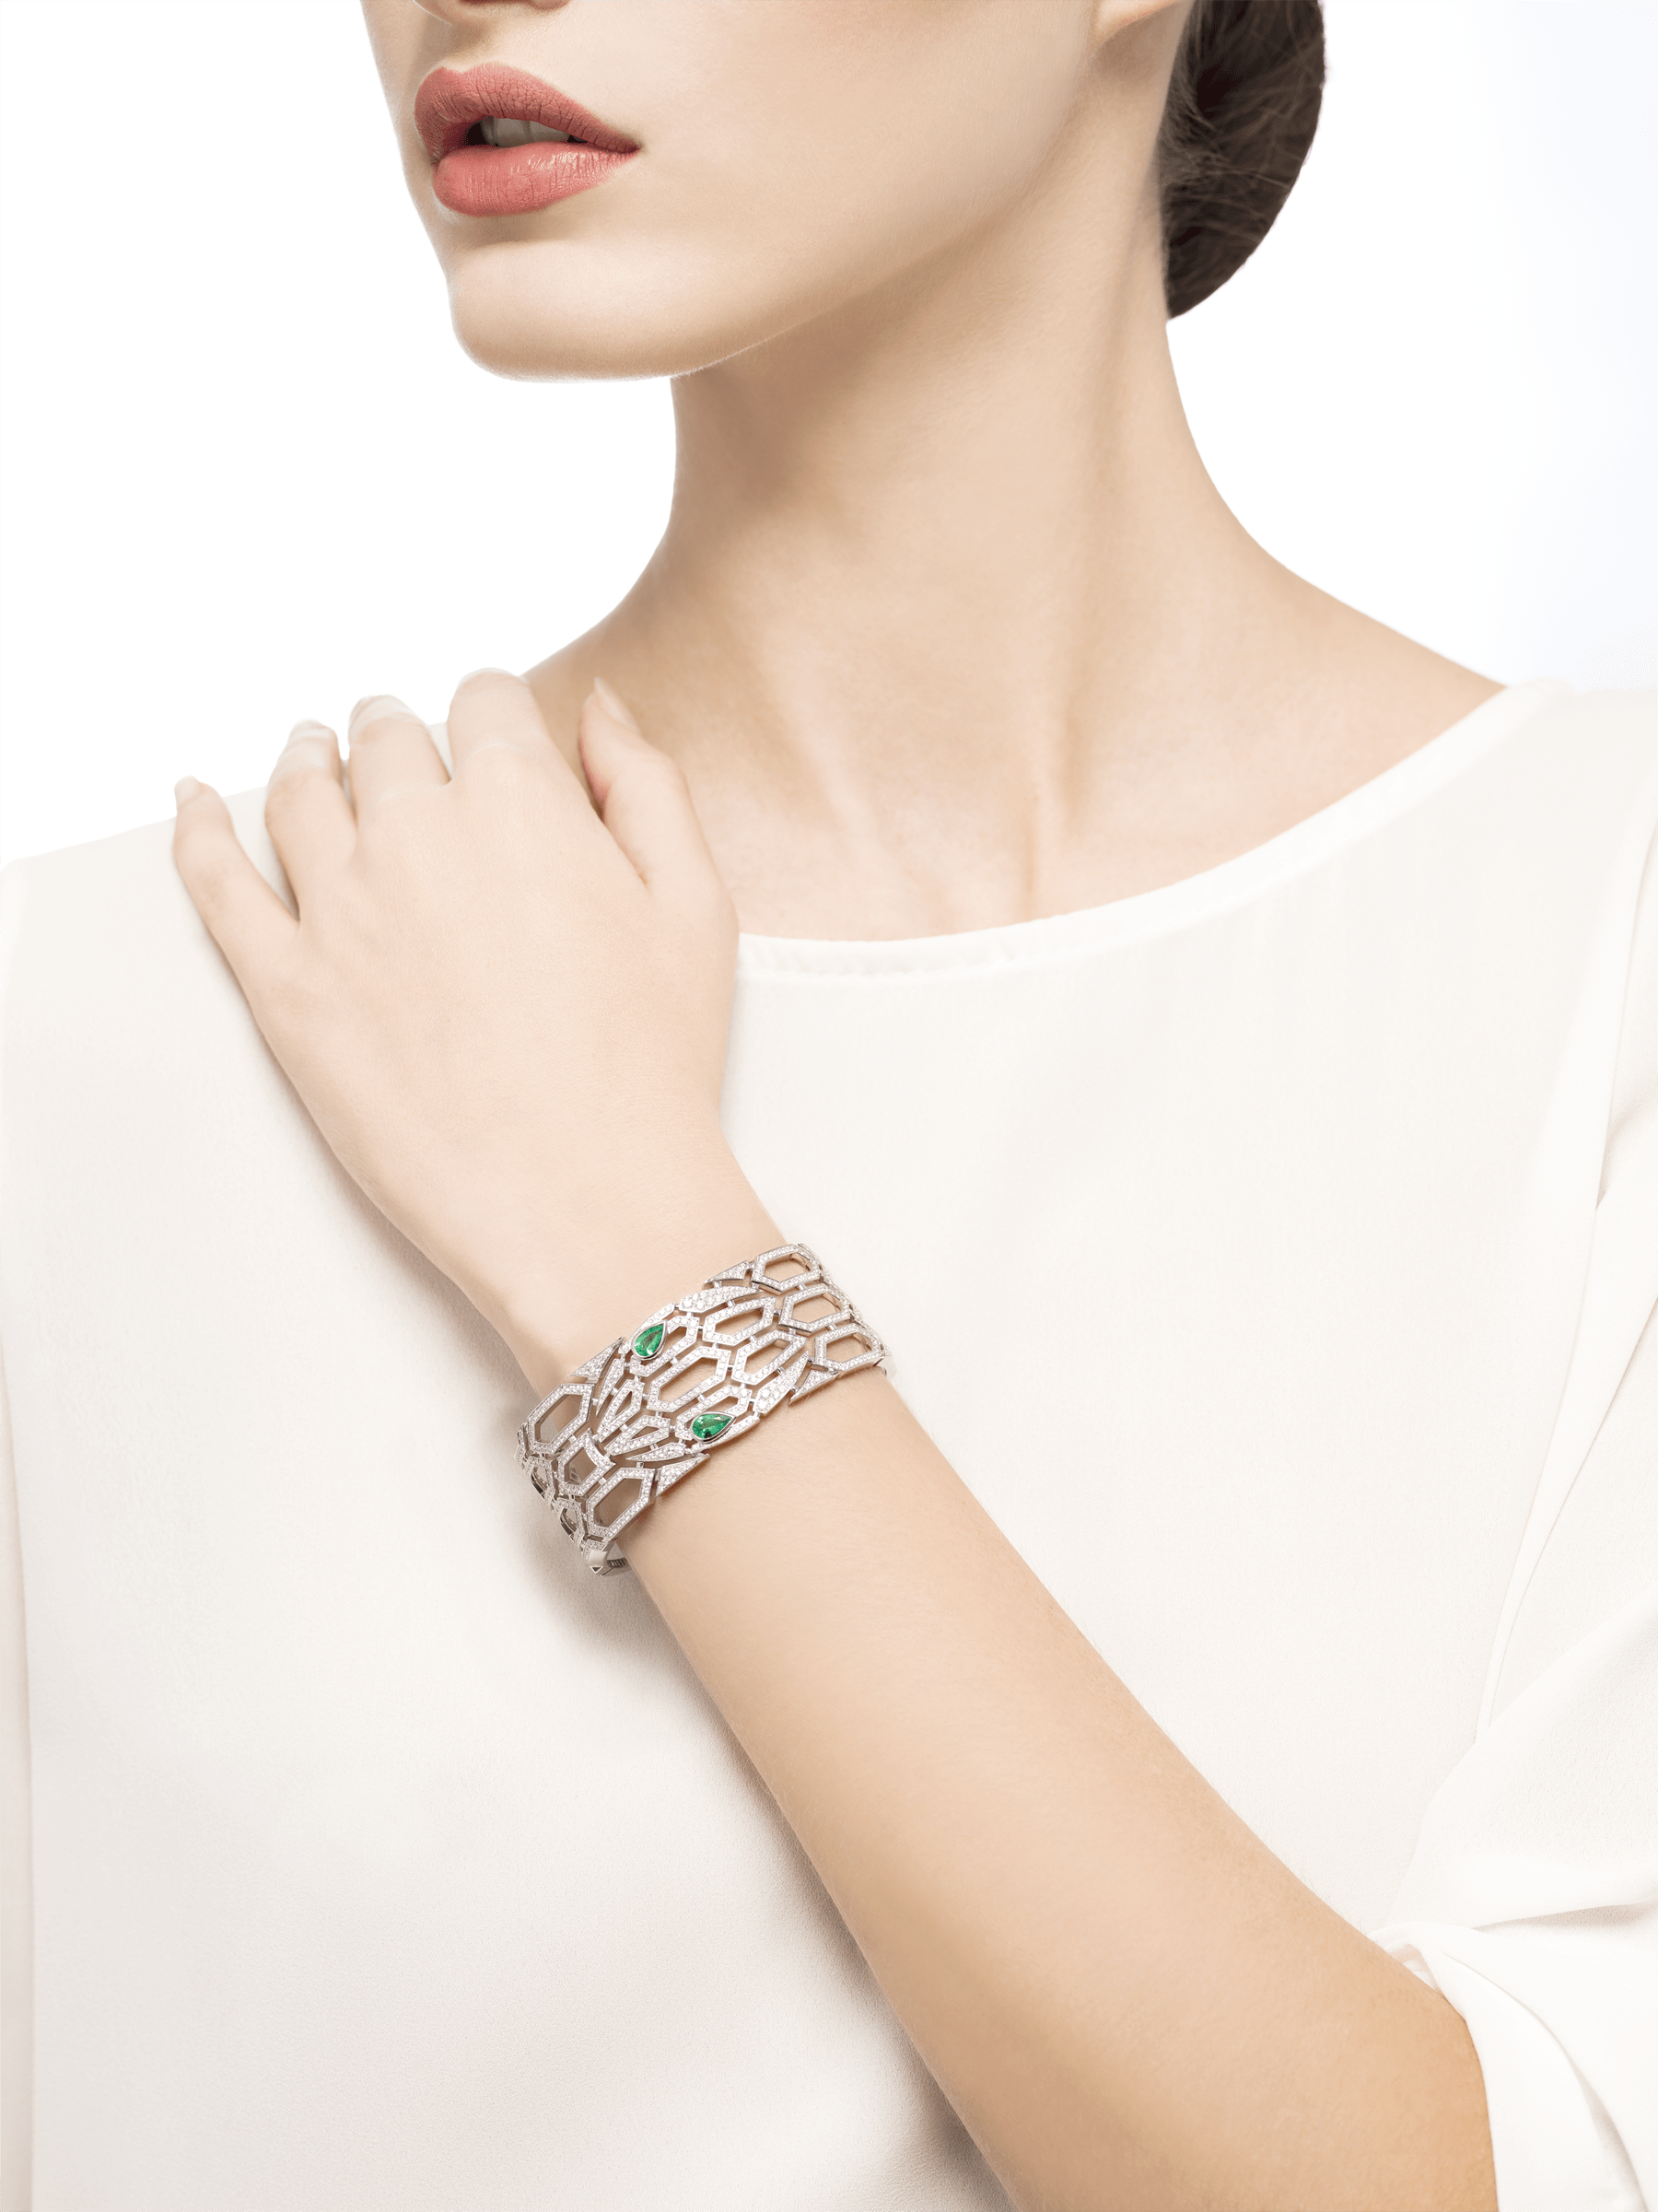 Serpenti bangle bracelet in 18 kt white gold, set with emerald eyes and full pavé diamonds. BR857667 image 2